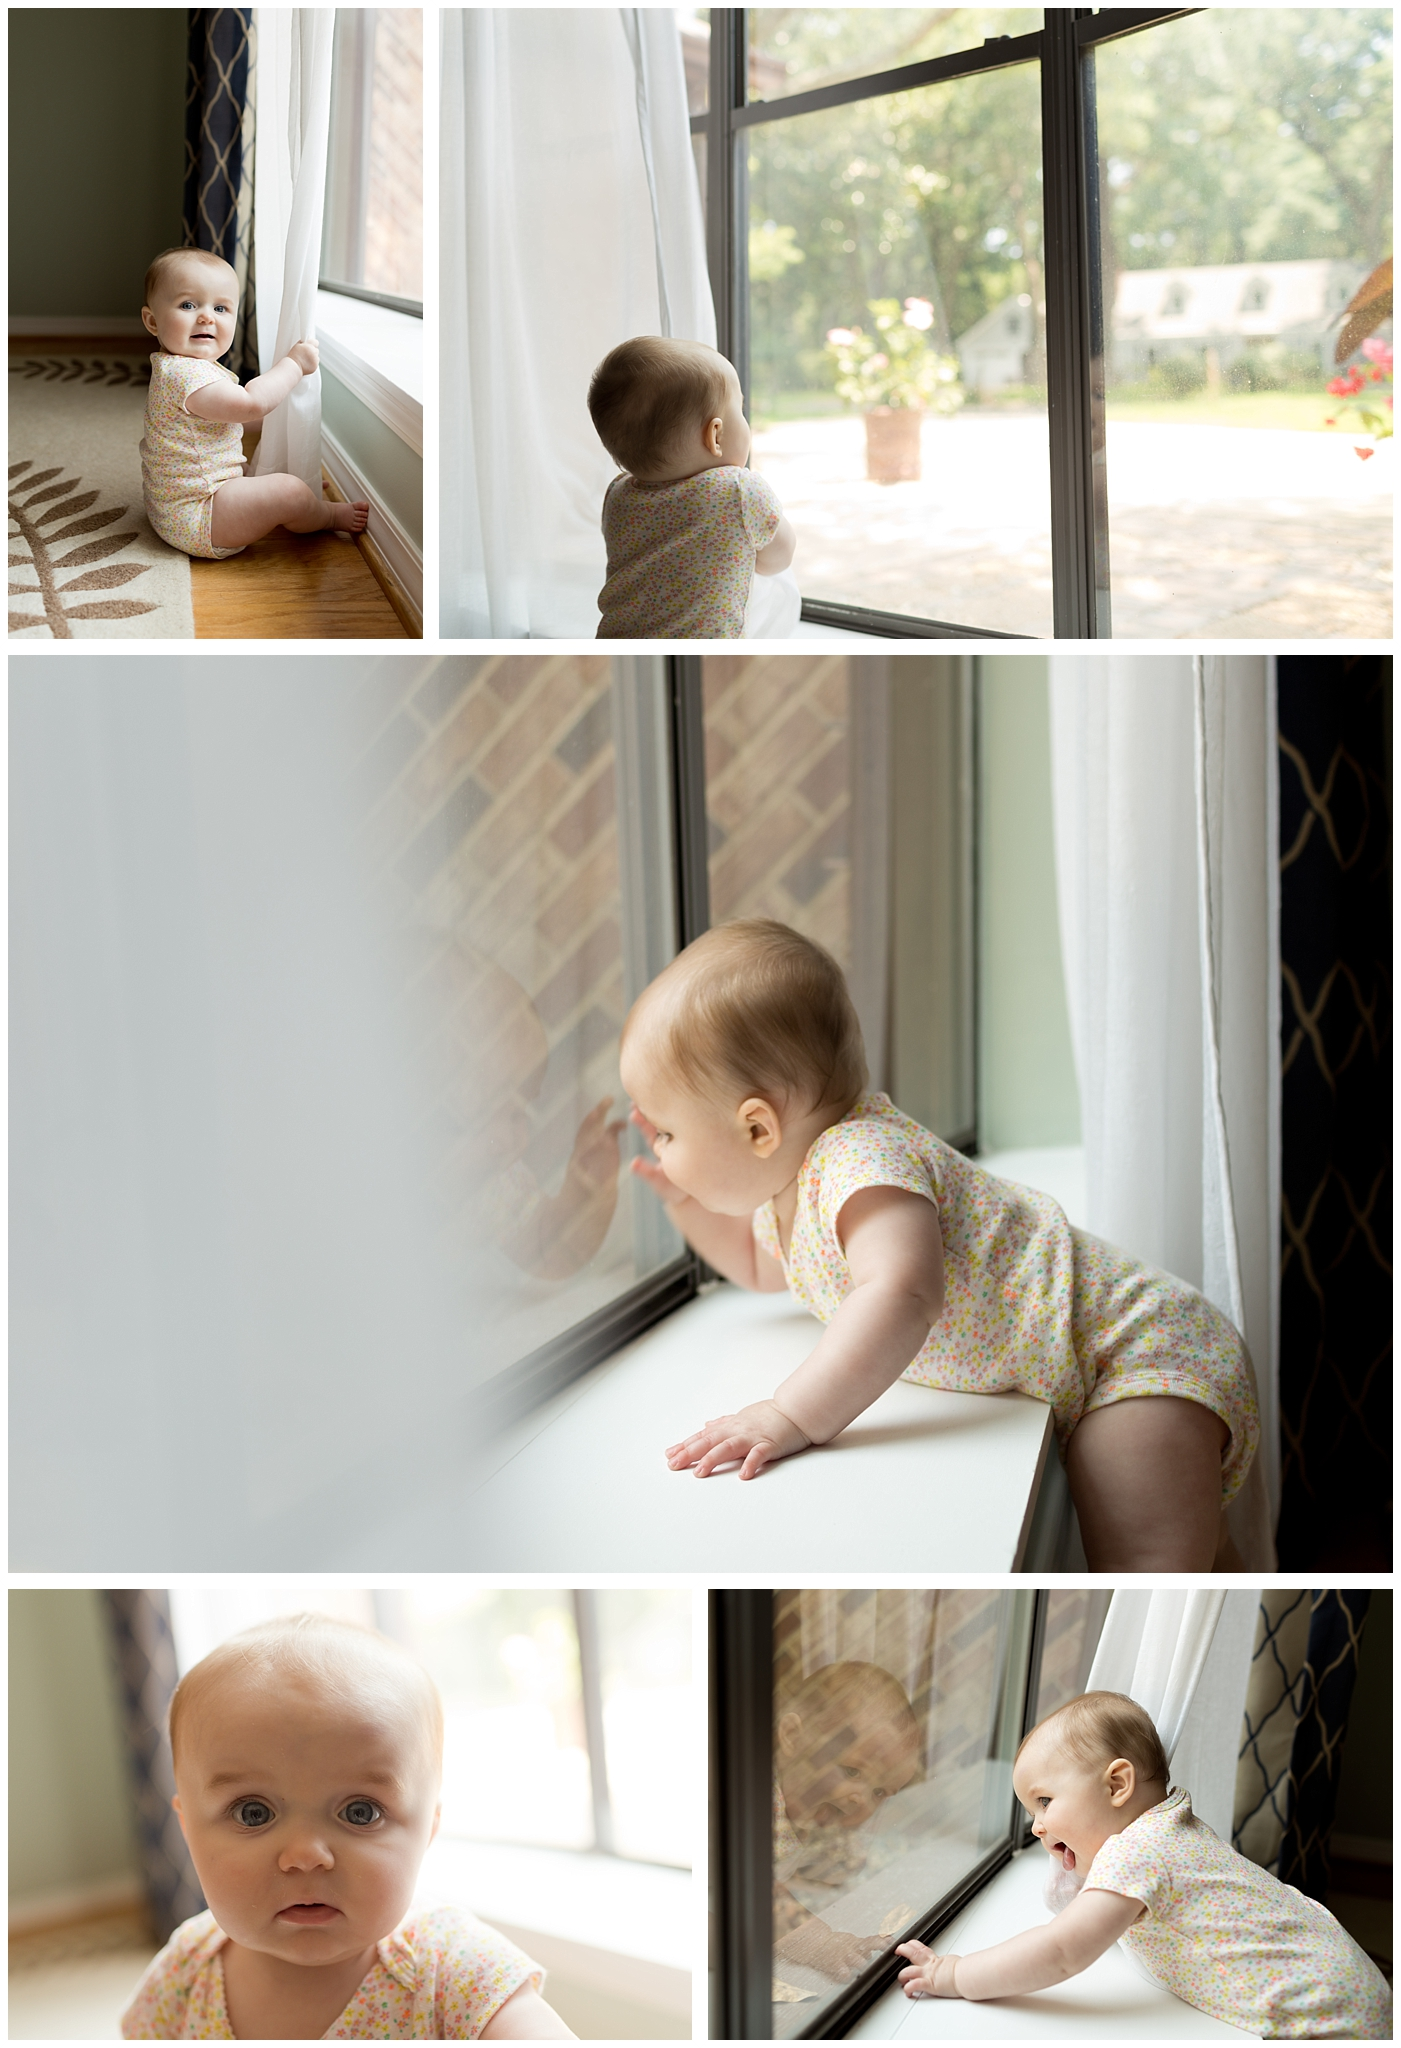 baby girl loves playing at bay window with curtains